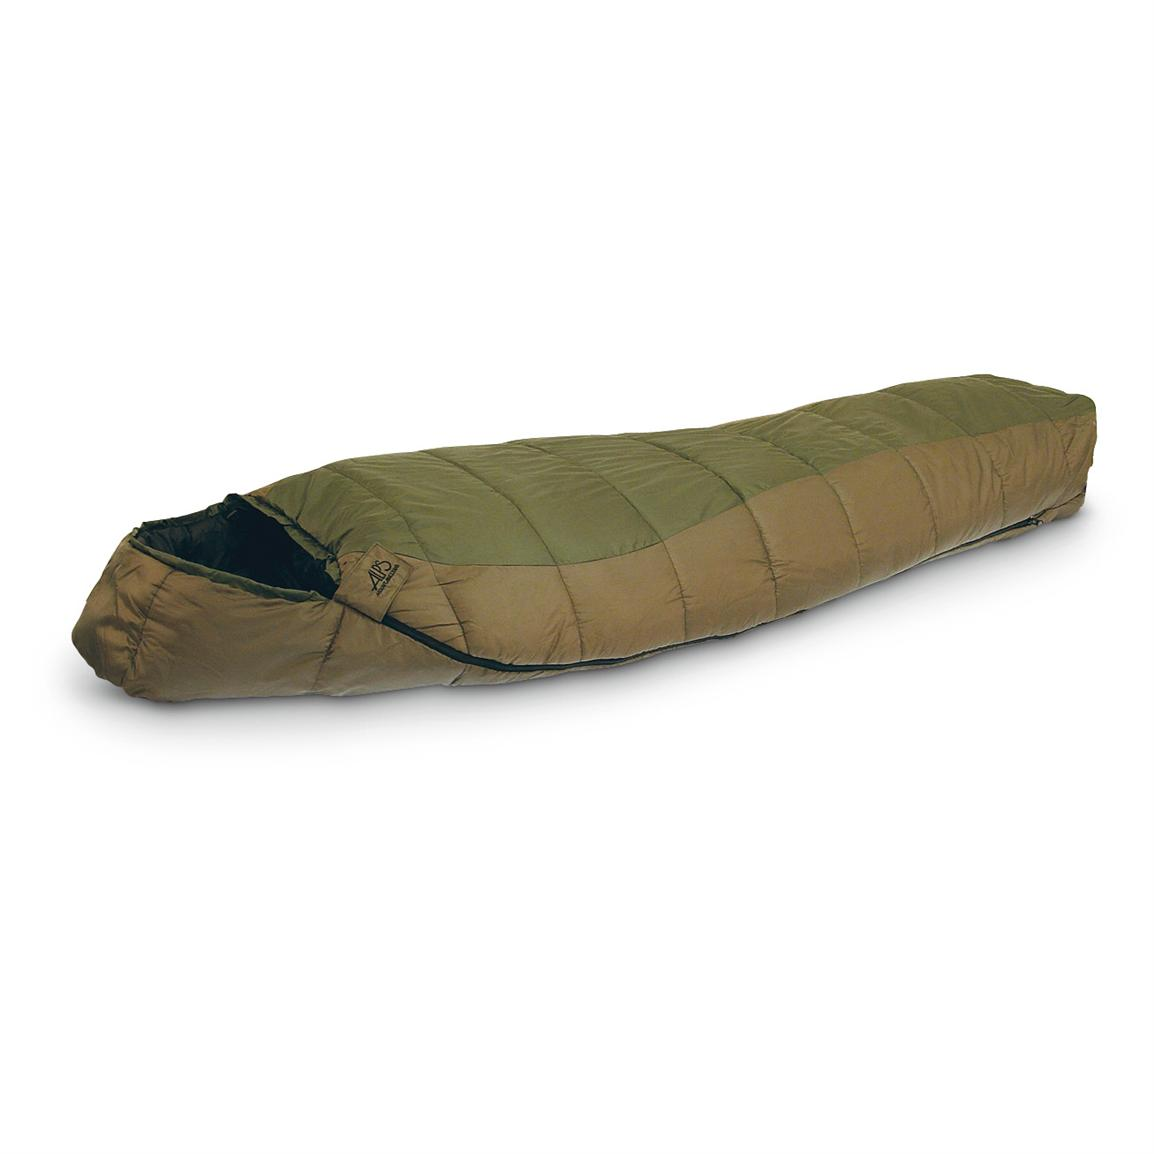 Alps® Crescent Lake Sleeping Bag; Warm to -20 Degrees F!